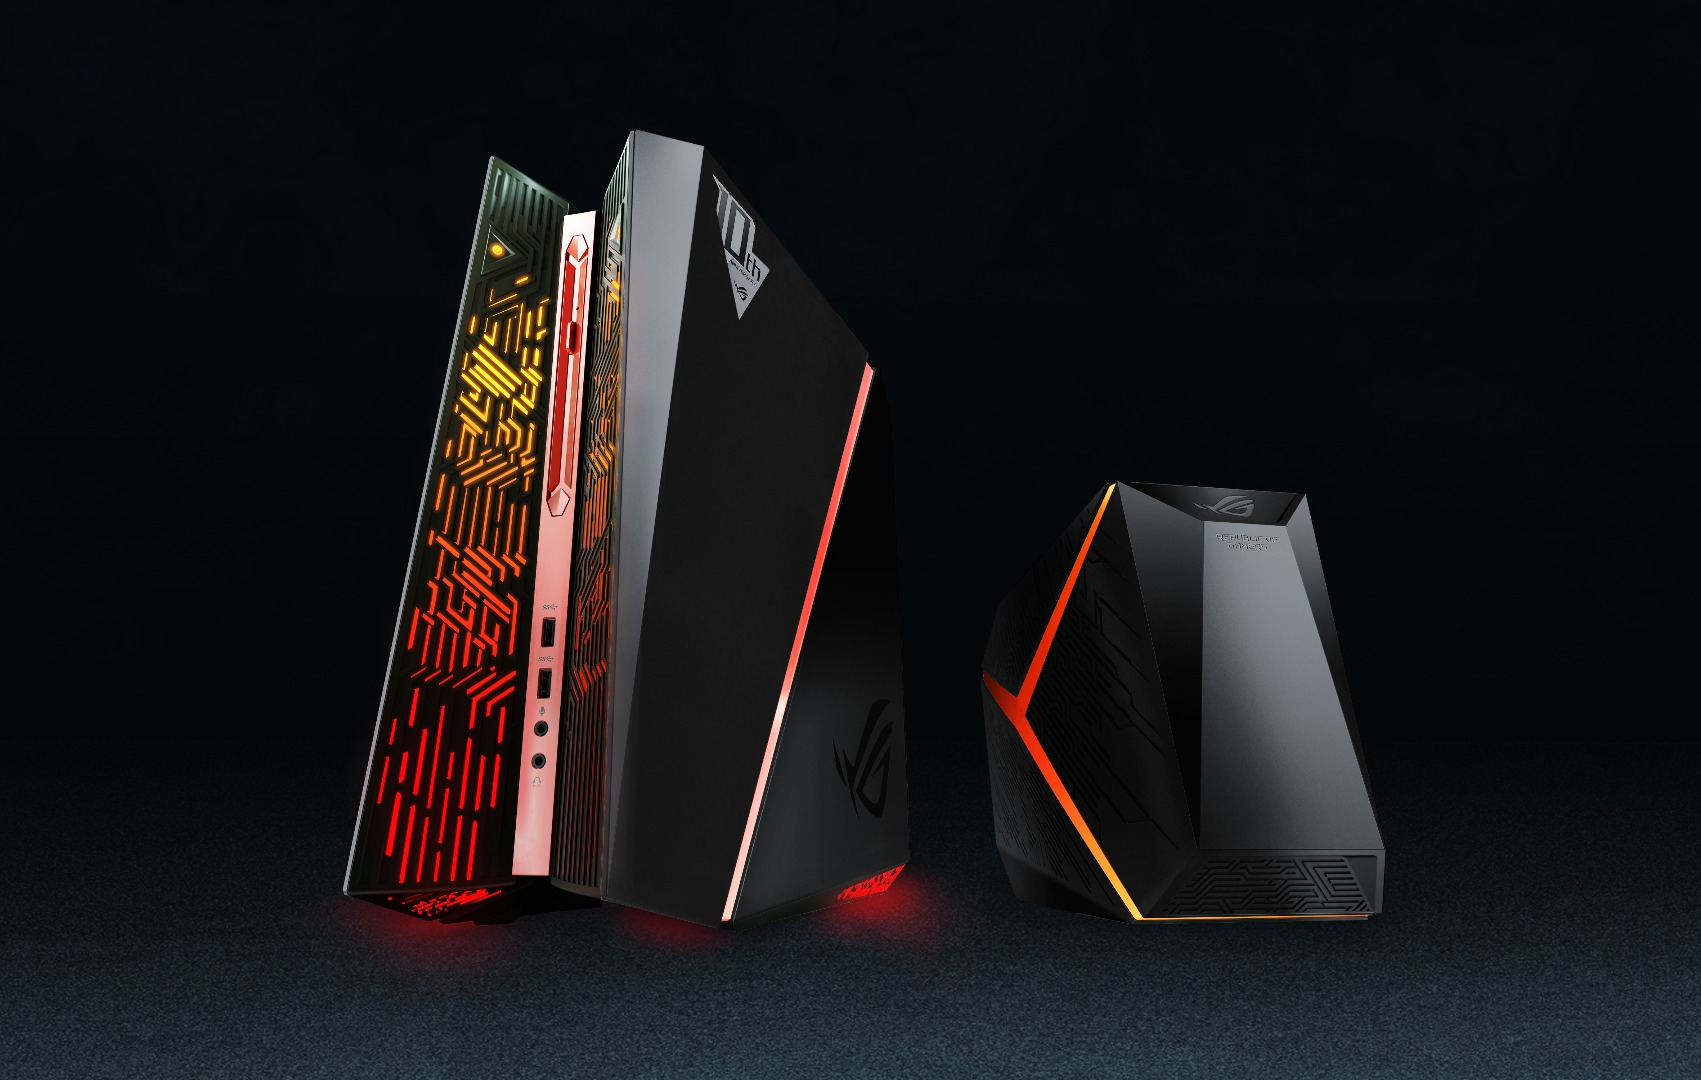 asus announces world s most powerful compact gaming desktop mspoweruser. Black Bedroom Furniture Sets. Home Design Ideas